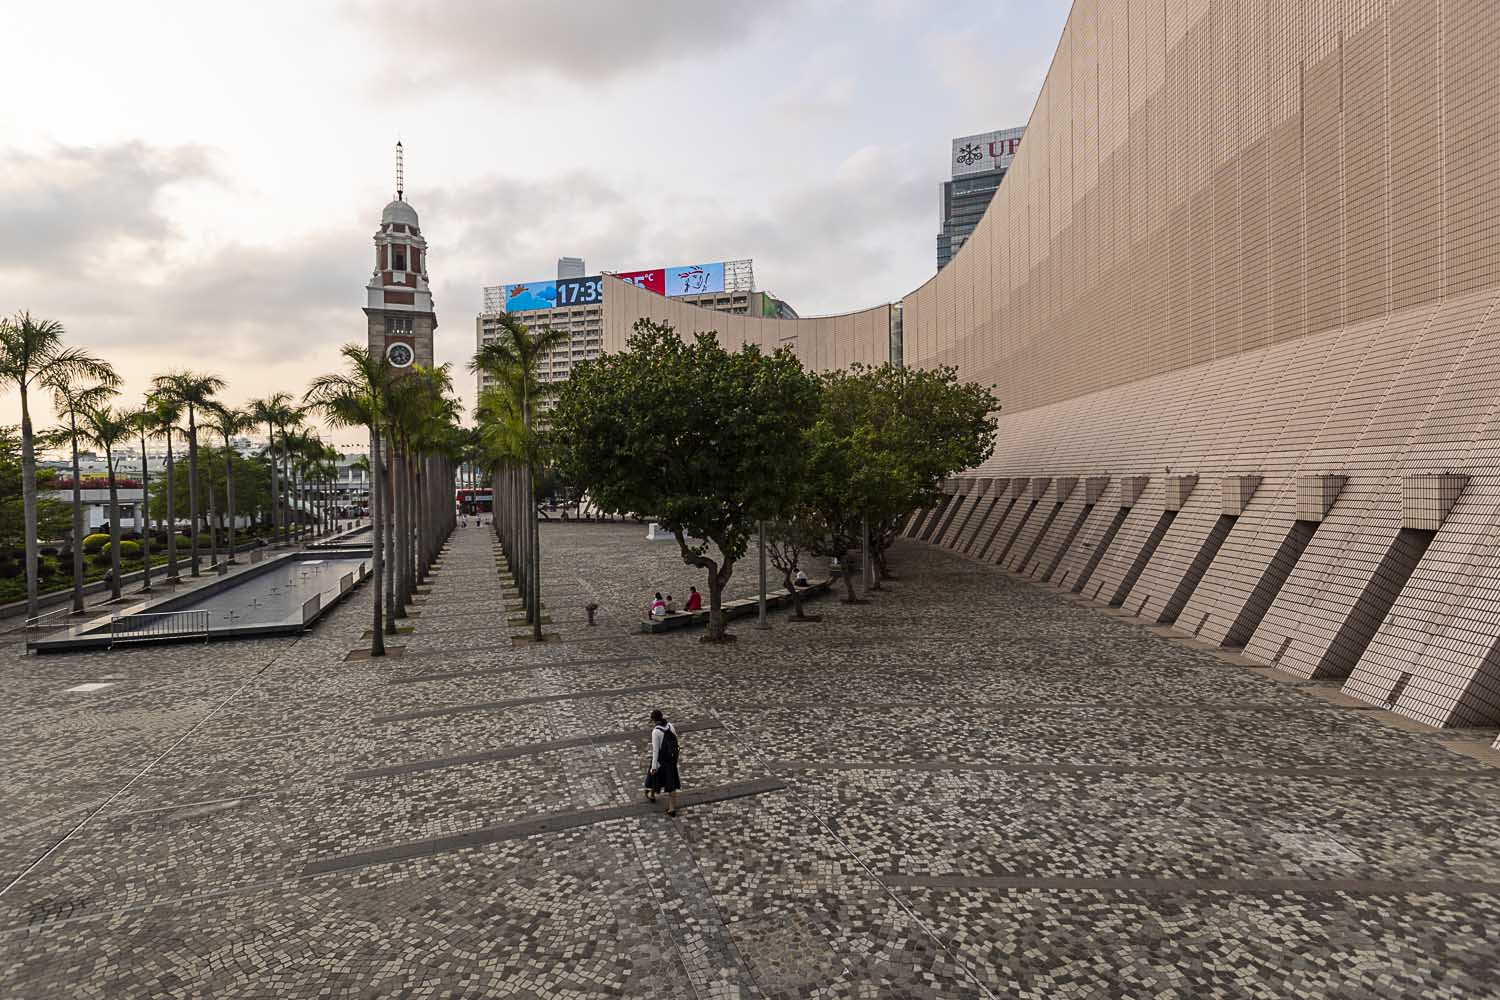 March 26, 2020: Museums and galleries are shut and few venture out